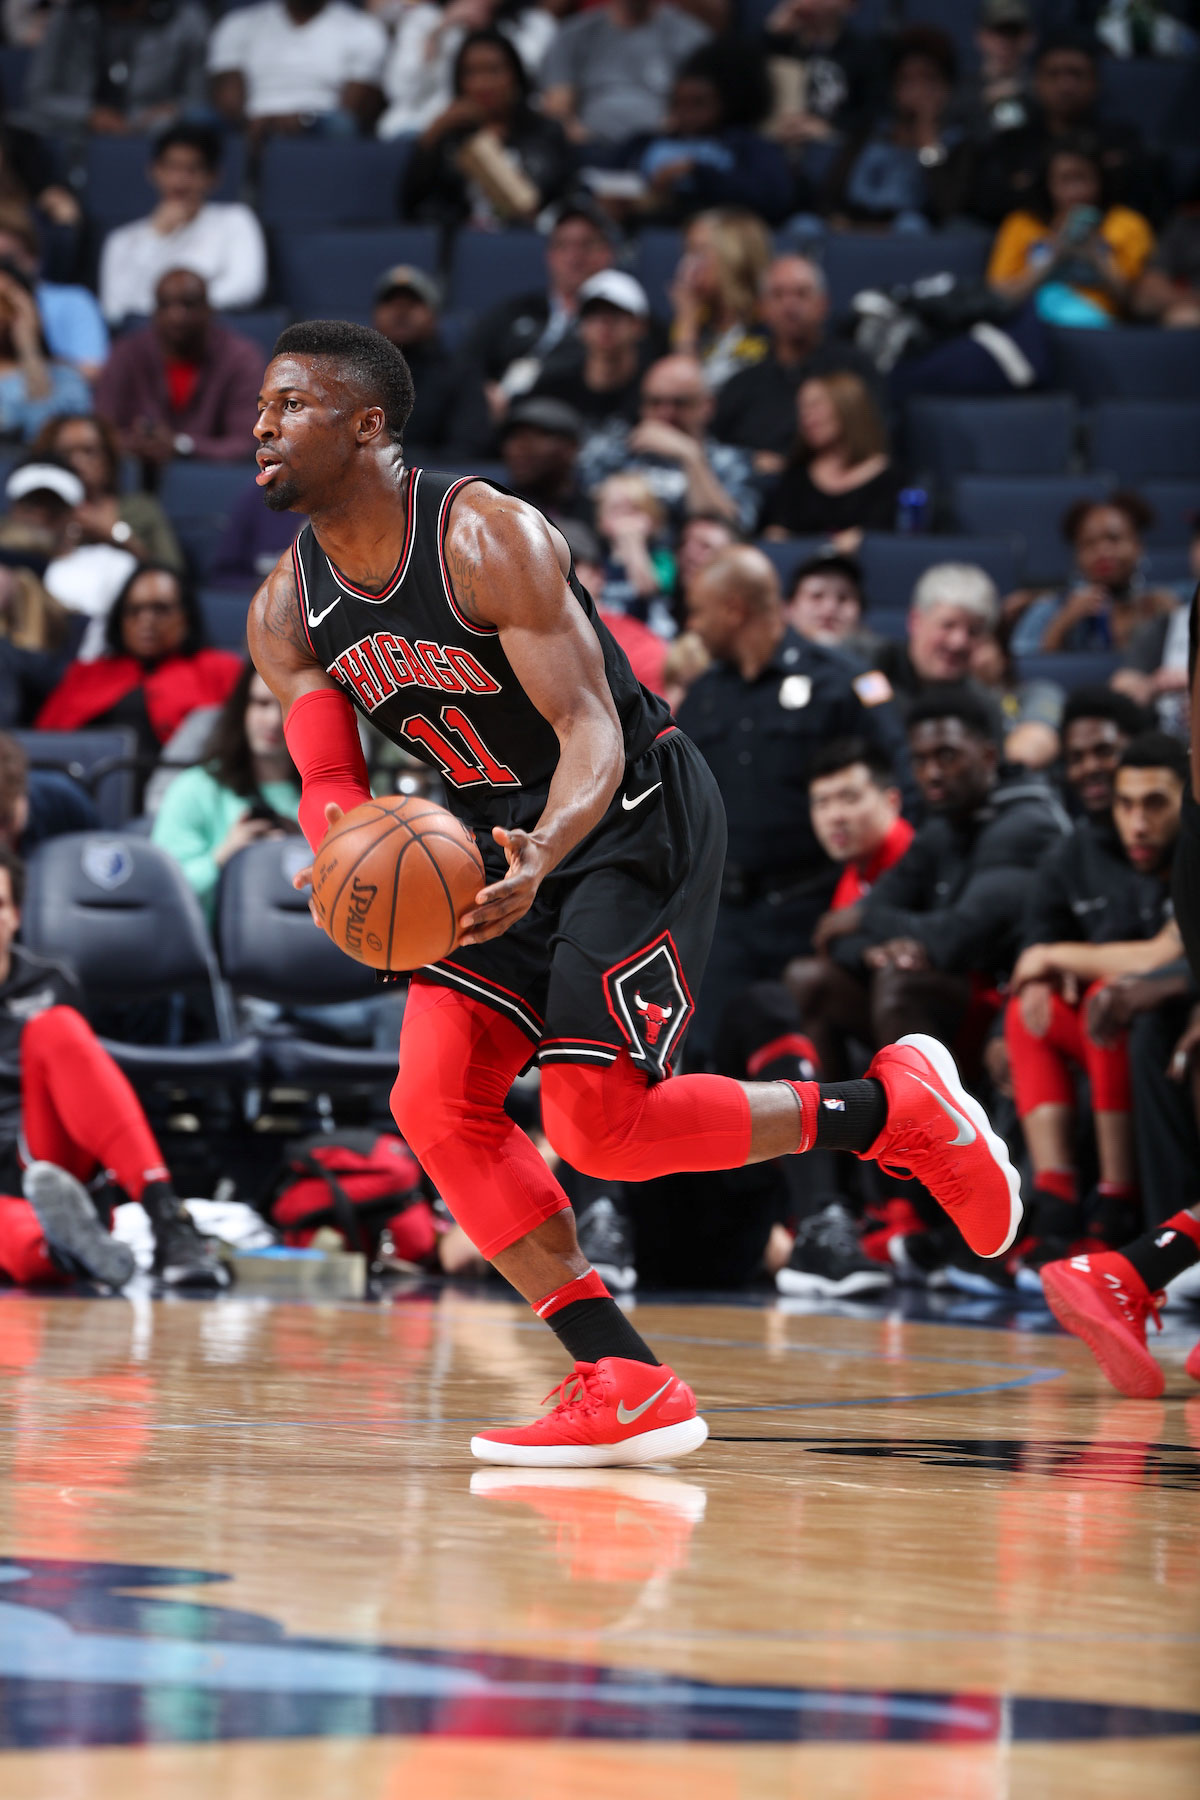 David Nwaba #11 of the Chicago Bulls handles the ball during the game against the Memphis Grizzlies on March 15, 2018 at FedExForum in Memphis, Tennessee